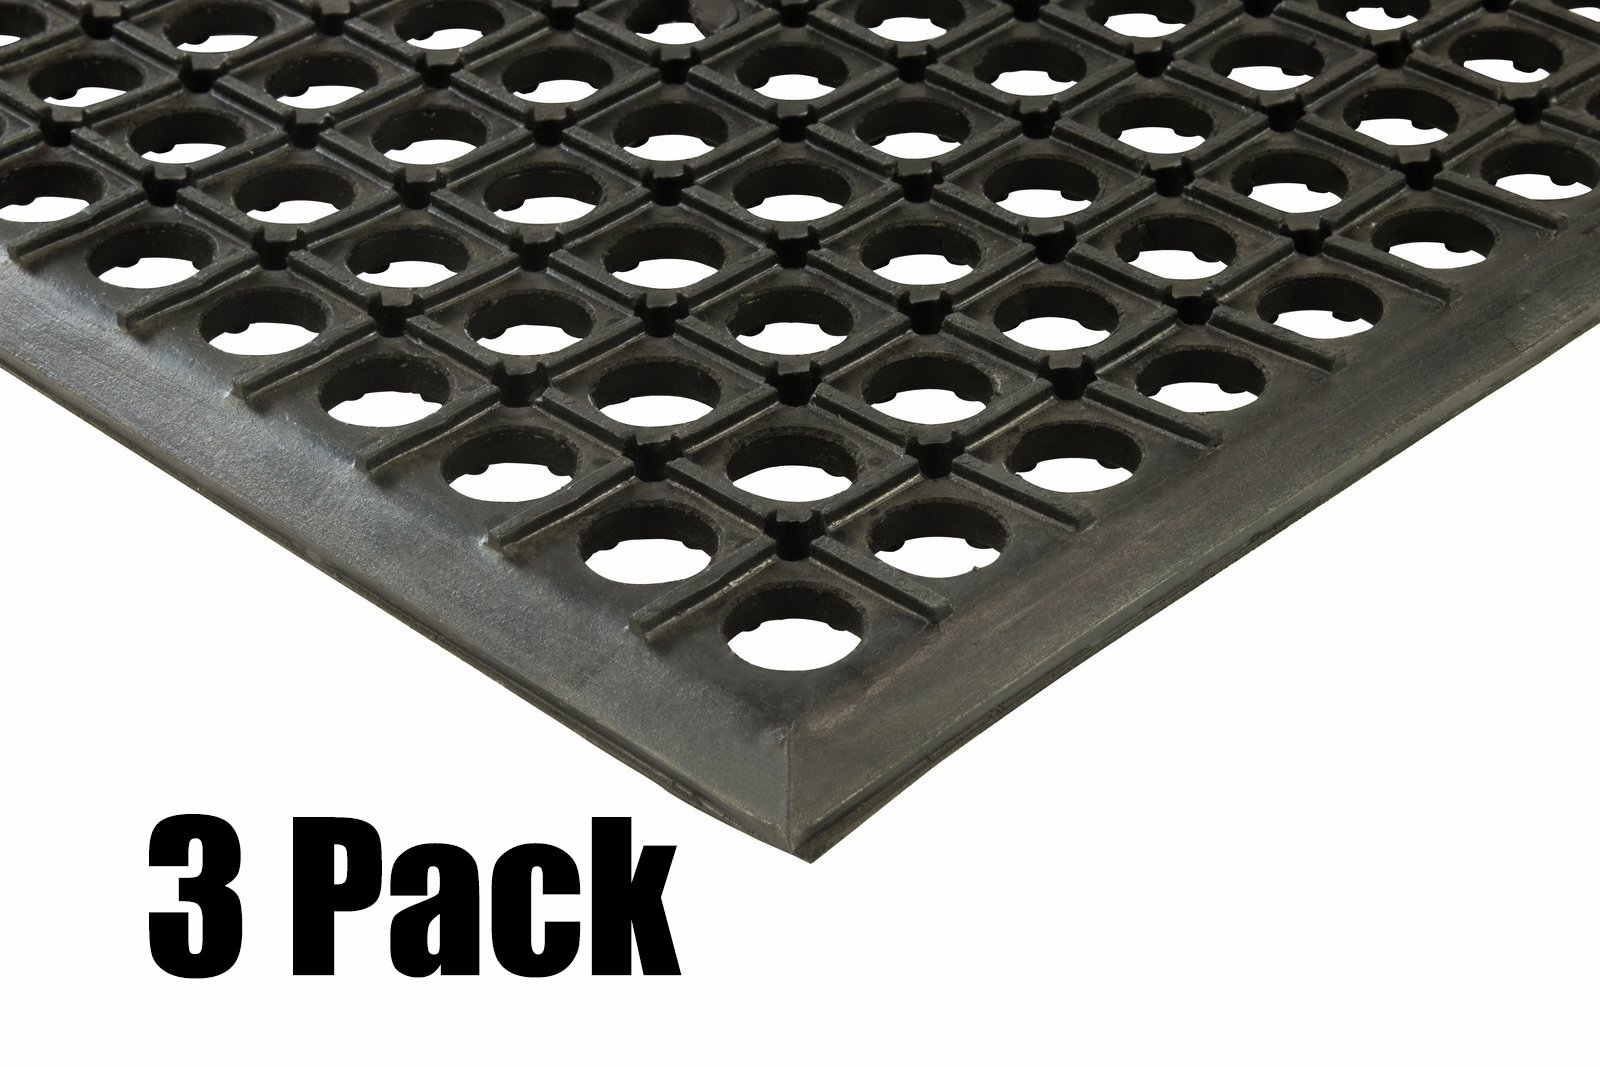 (3) Erie Tools 3x5 Rubber Drainage Floor Mat 36'' x 60'' Anti-Fatigue Anti-slip by Unknown